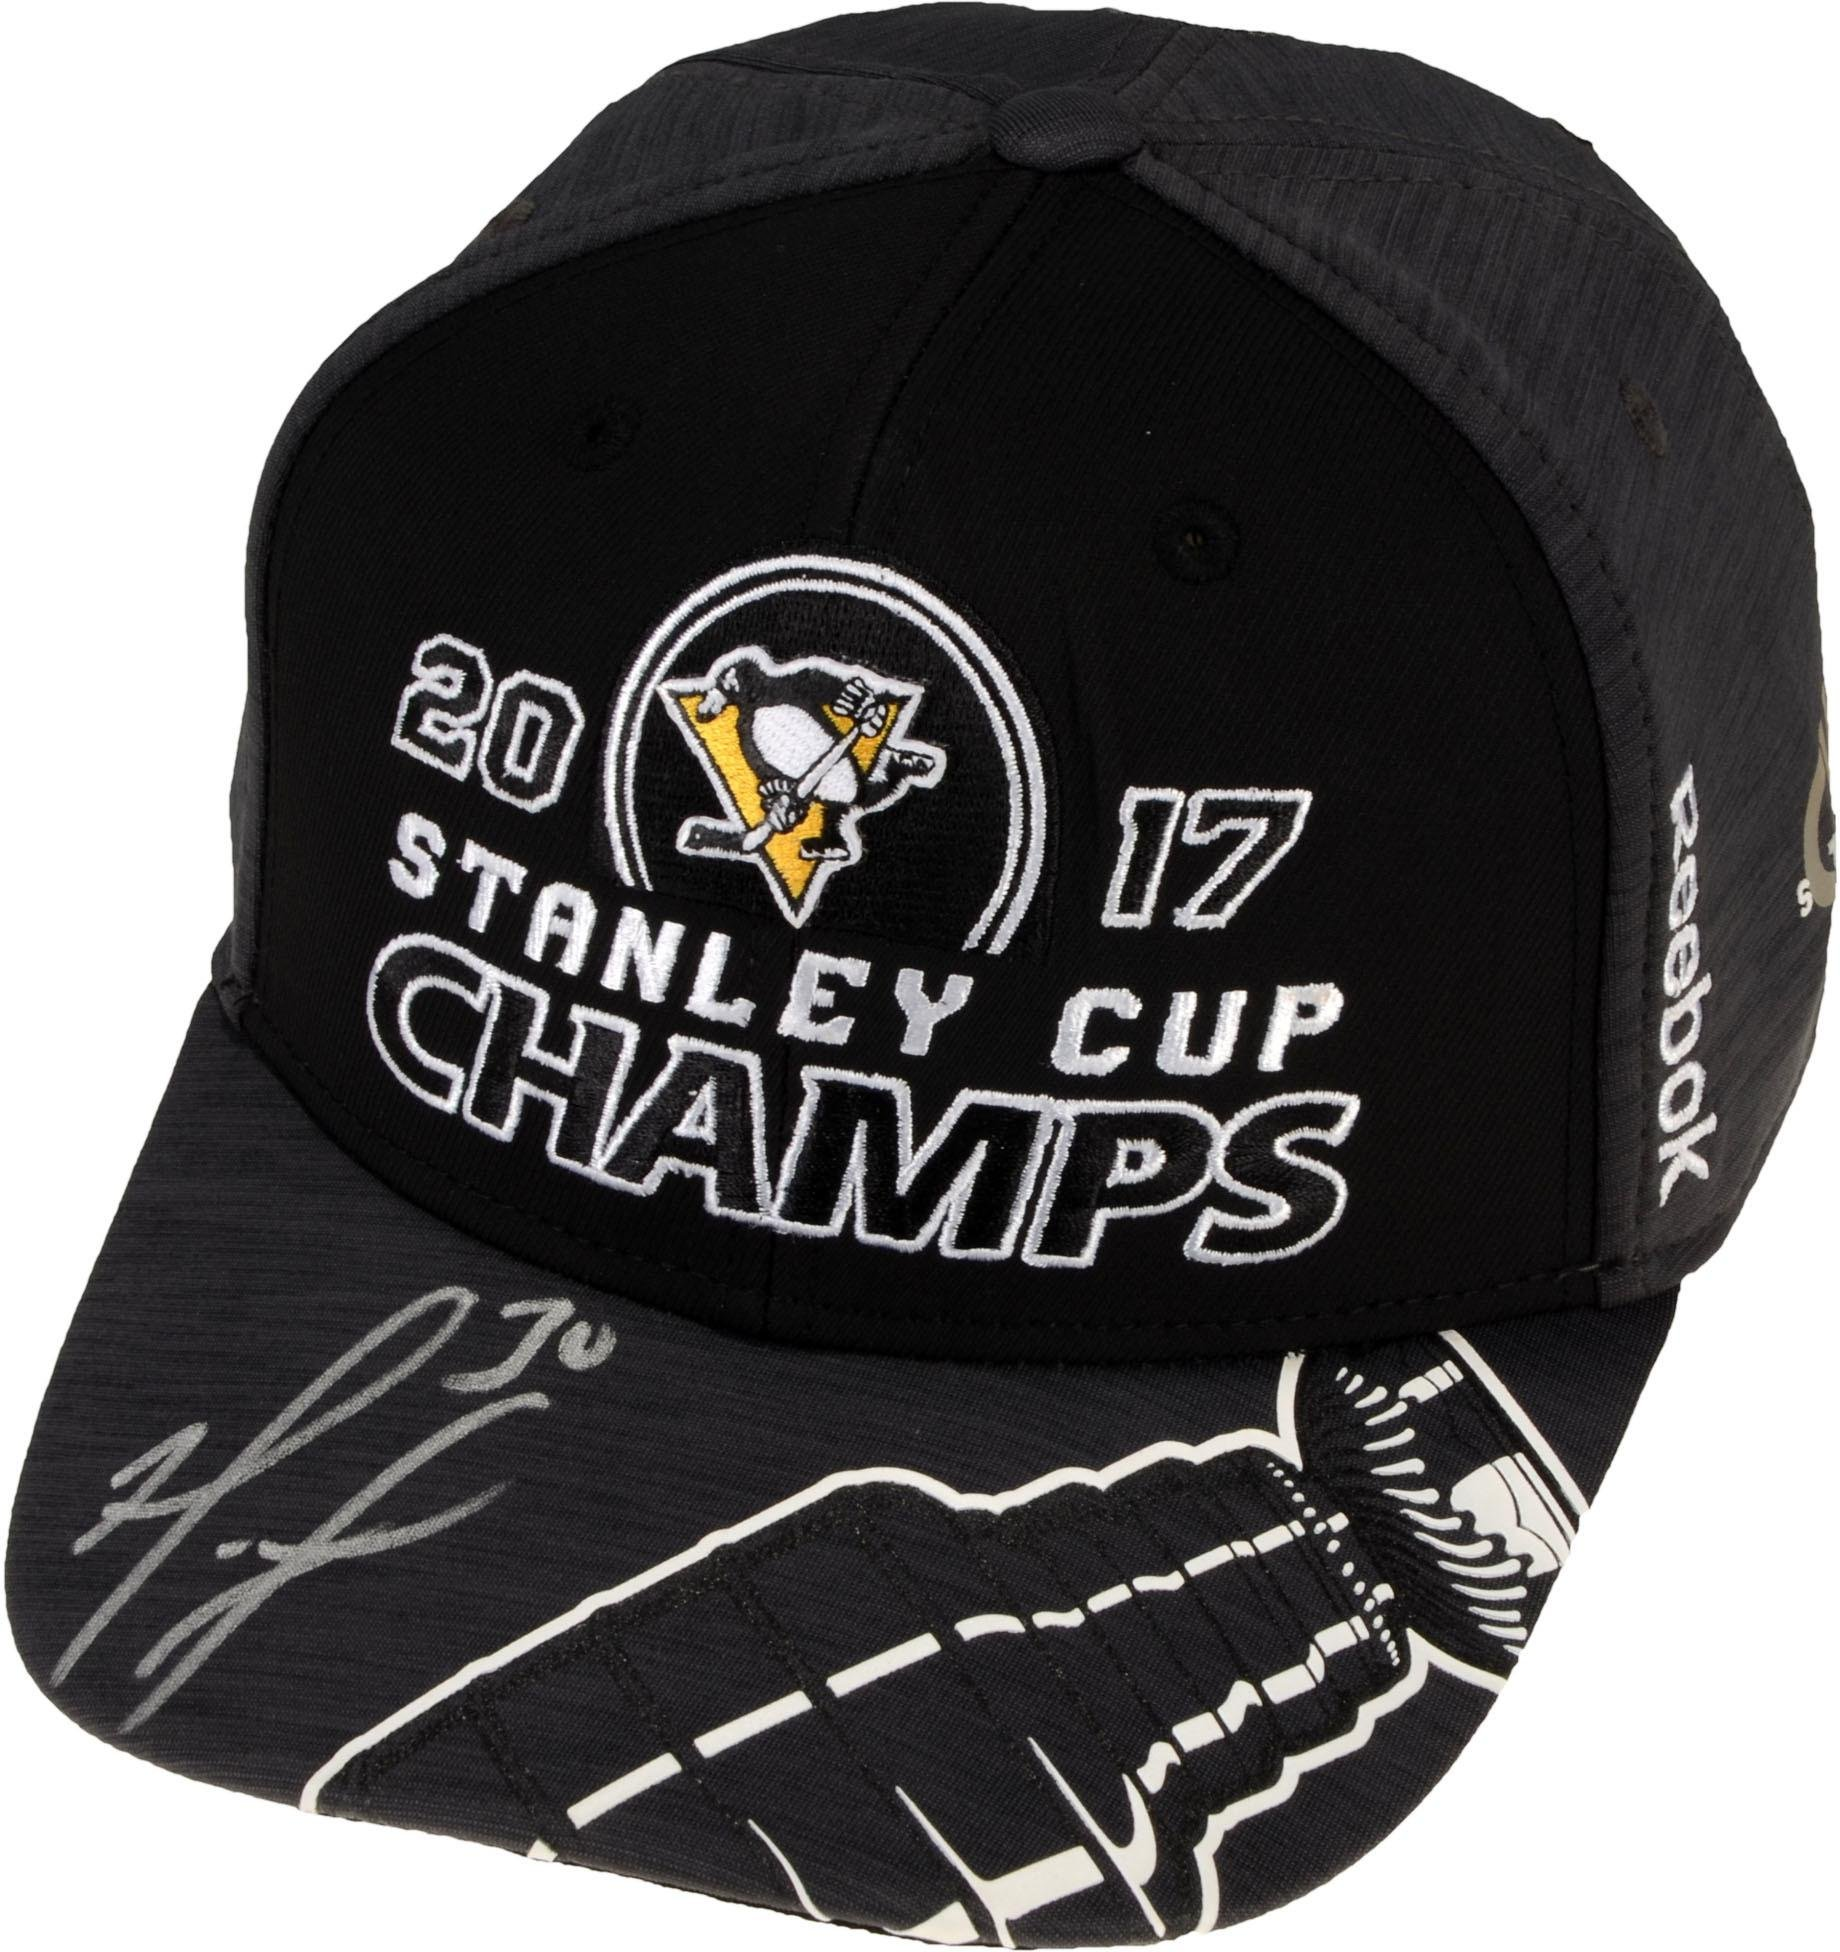 Matt Murray Pittsburgh Penguins 2017 Stanley Cup Champions Autographed Locker Room Cap Fanatics Authentic Certified